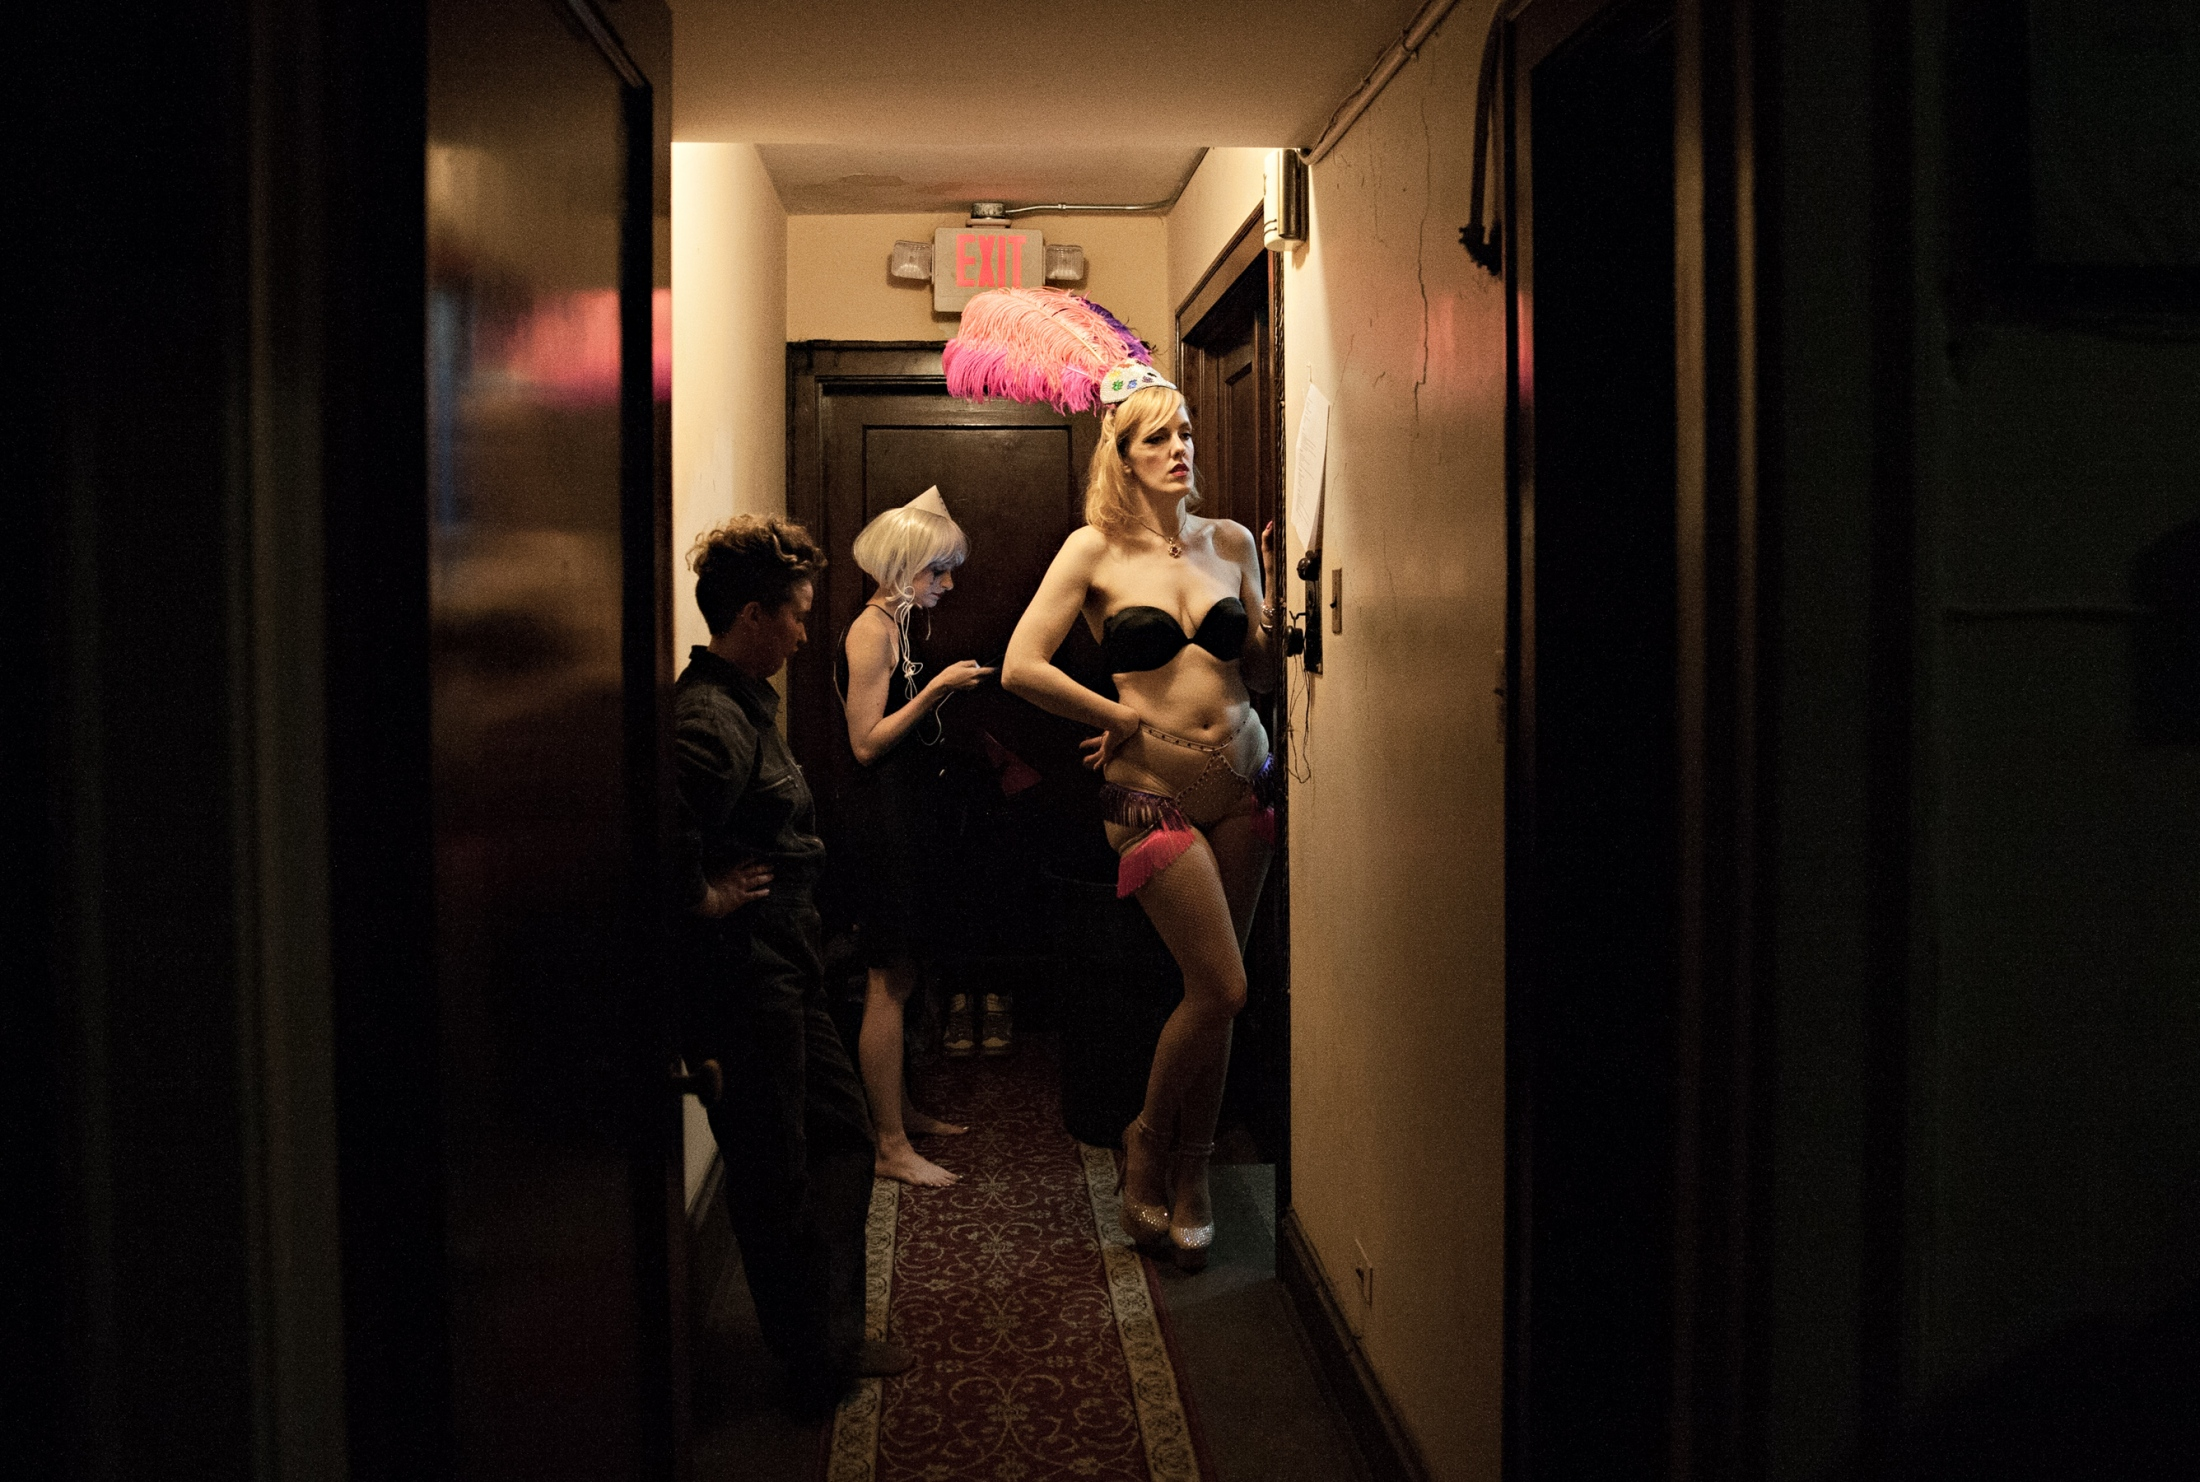 Double Dixen, Lady Jack and Red Hot Annie hang outside the makeup room and wait for their curtain time. The backstage area differs with each venue. Often the space is extremely limited and the members of the troupe have to take turns and squeeze past one another as they prepare to take the stage. The camaraderie that exists between the members of Vaudezilla is palpable - it is obvious that they all genuinely like and support each other.